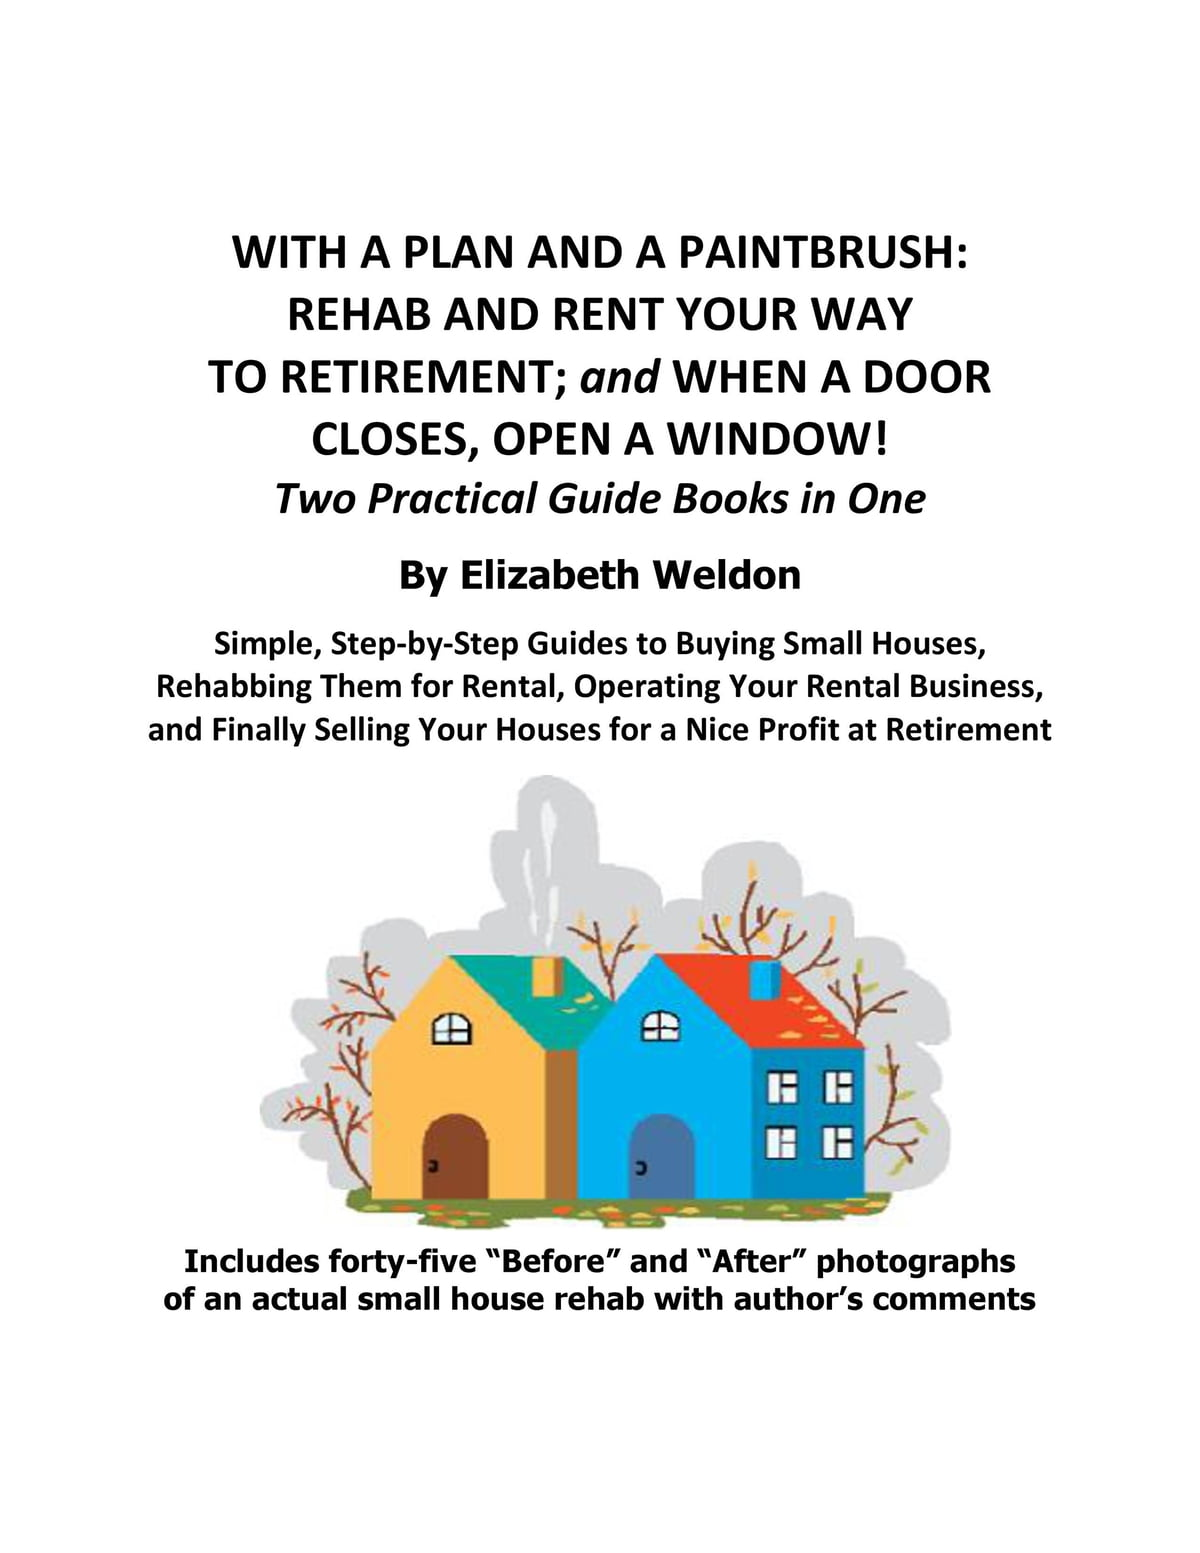 With a Plan and a Paintbrush: Rehab and Rent Your Way to Retirement ebook  by Elizabeth Weldon - Rakuten Kobo